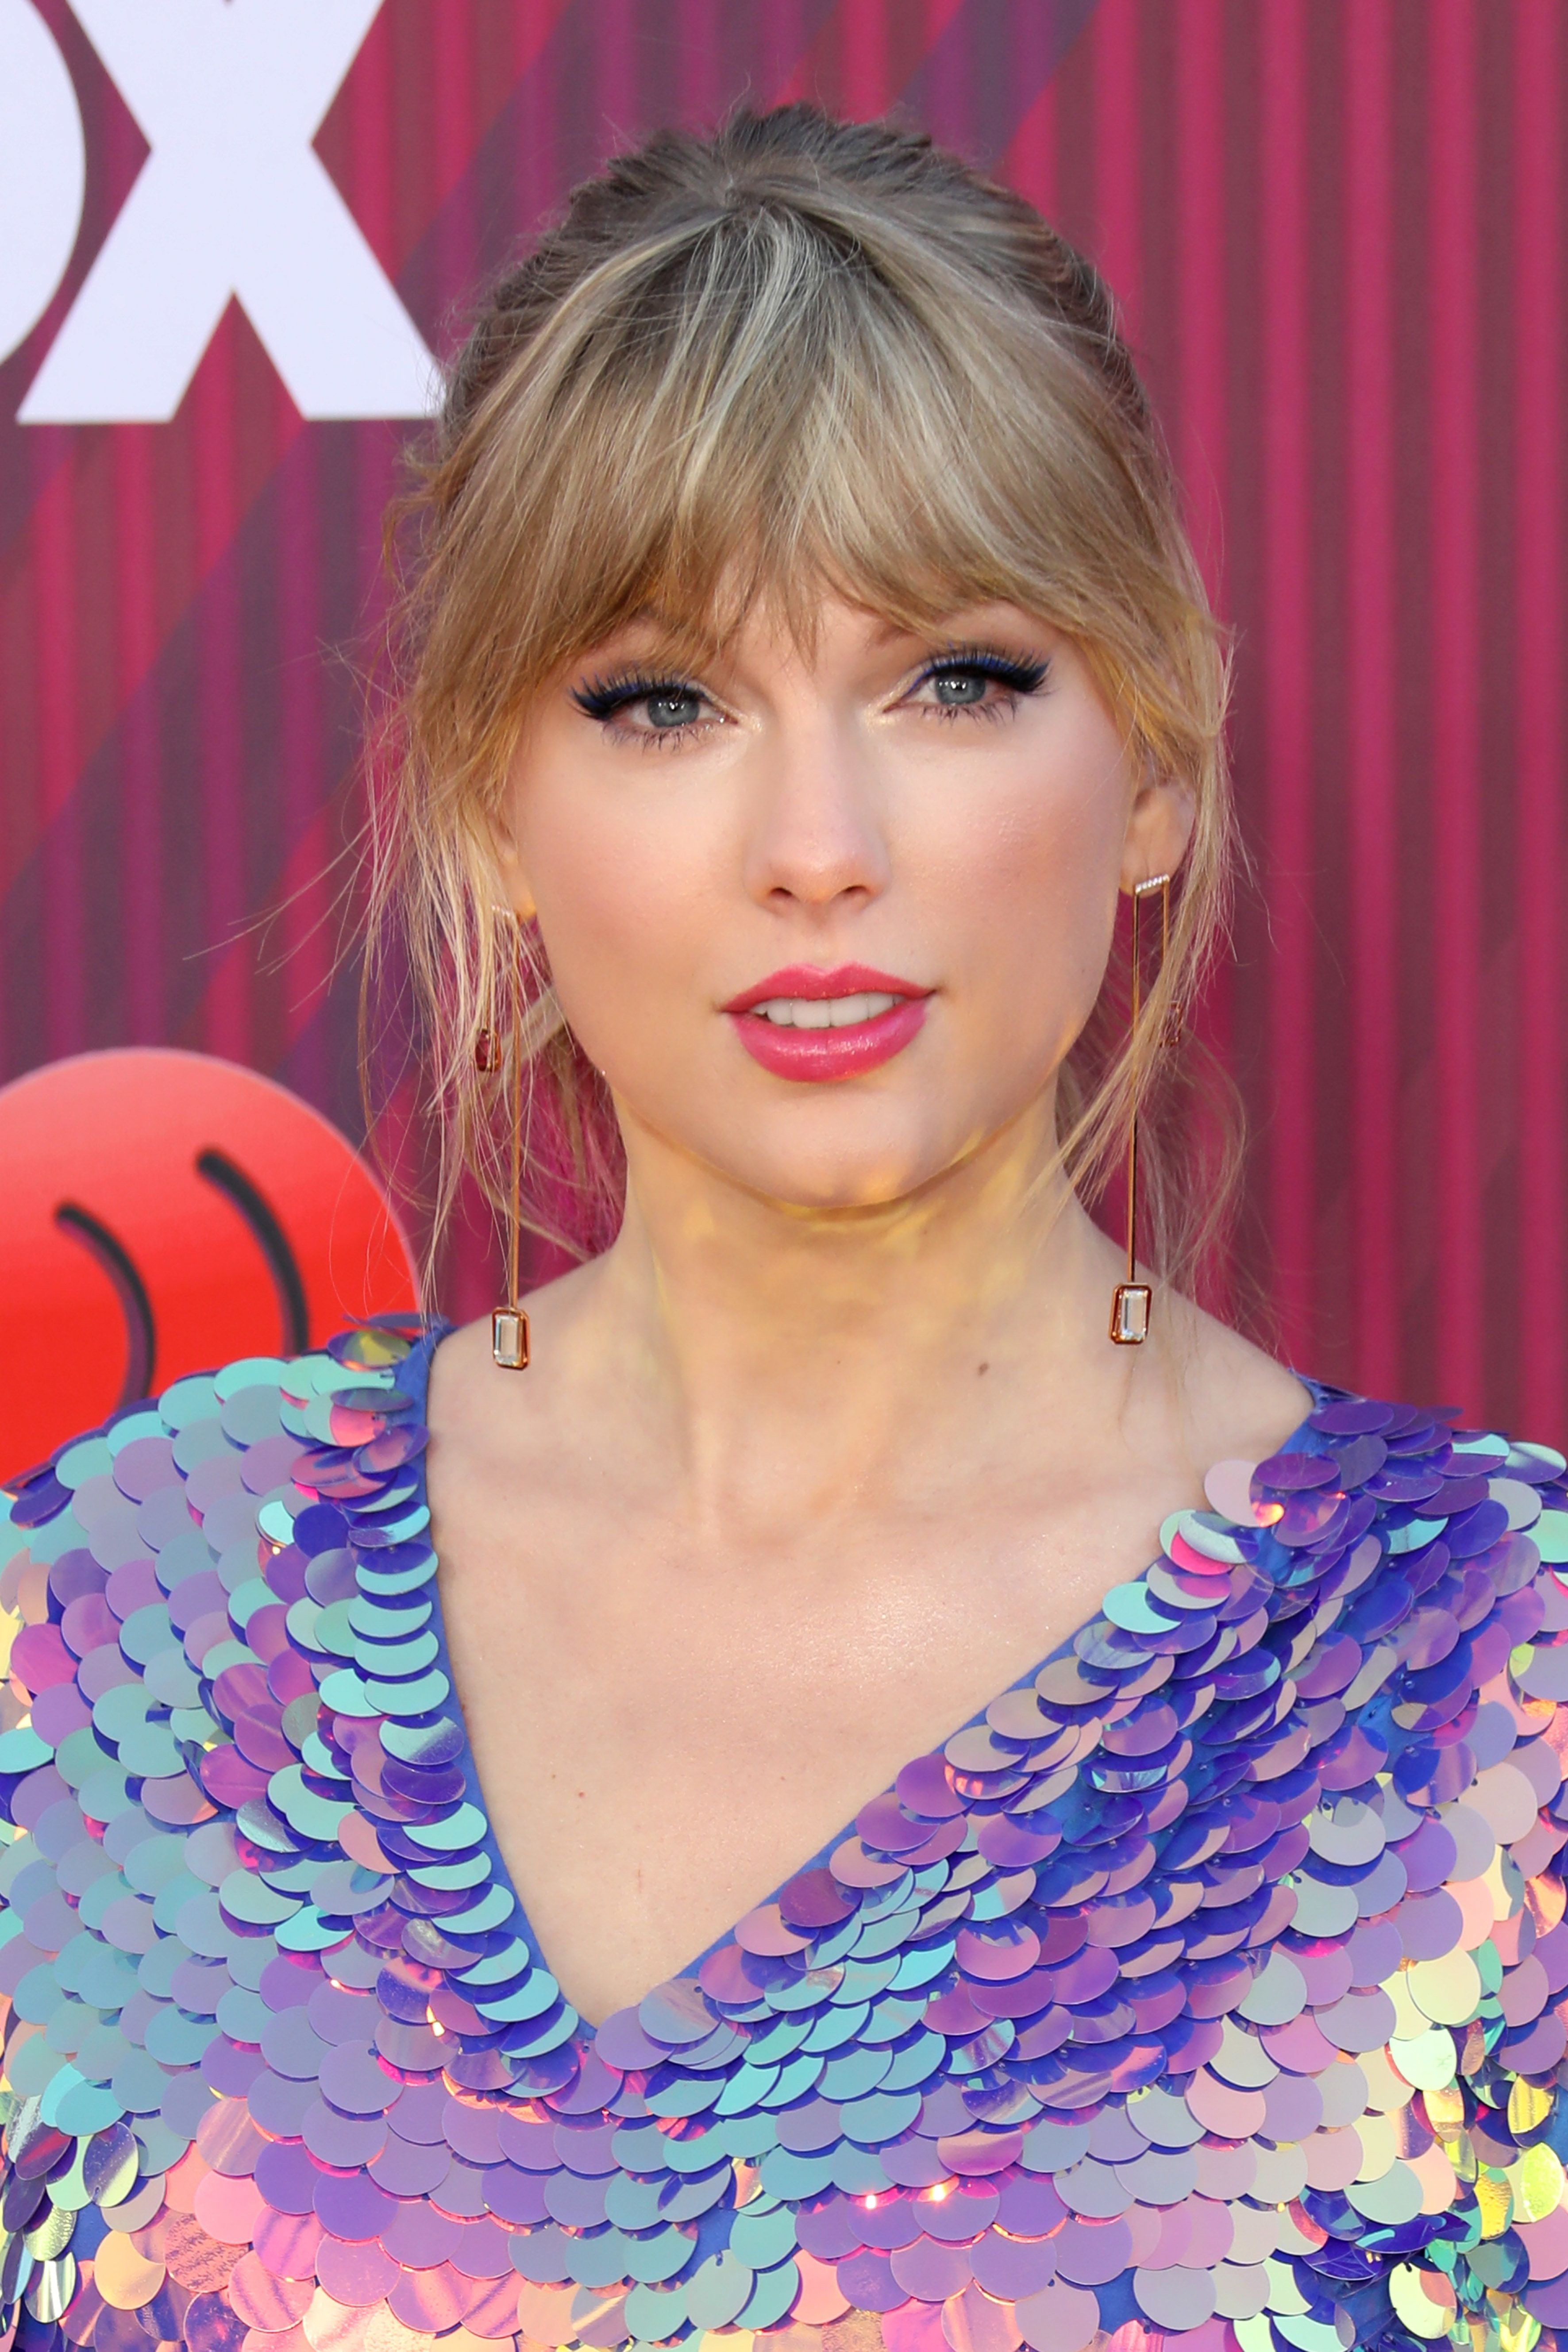 LOS ANGELES, CALIFORNIA - MARCH 14:  Taylor Swift arrives at the 2019 iHeartRadio Music Awards which broadcasted live on FOX at Microsoft Theater on March 14, 2019 in Los Angeles, California. (Photo by Tony Barson/WireImage)